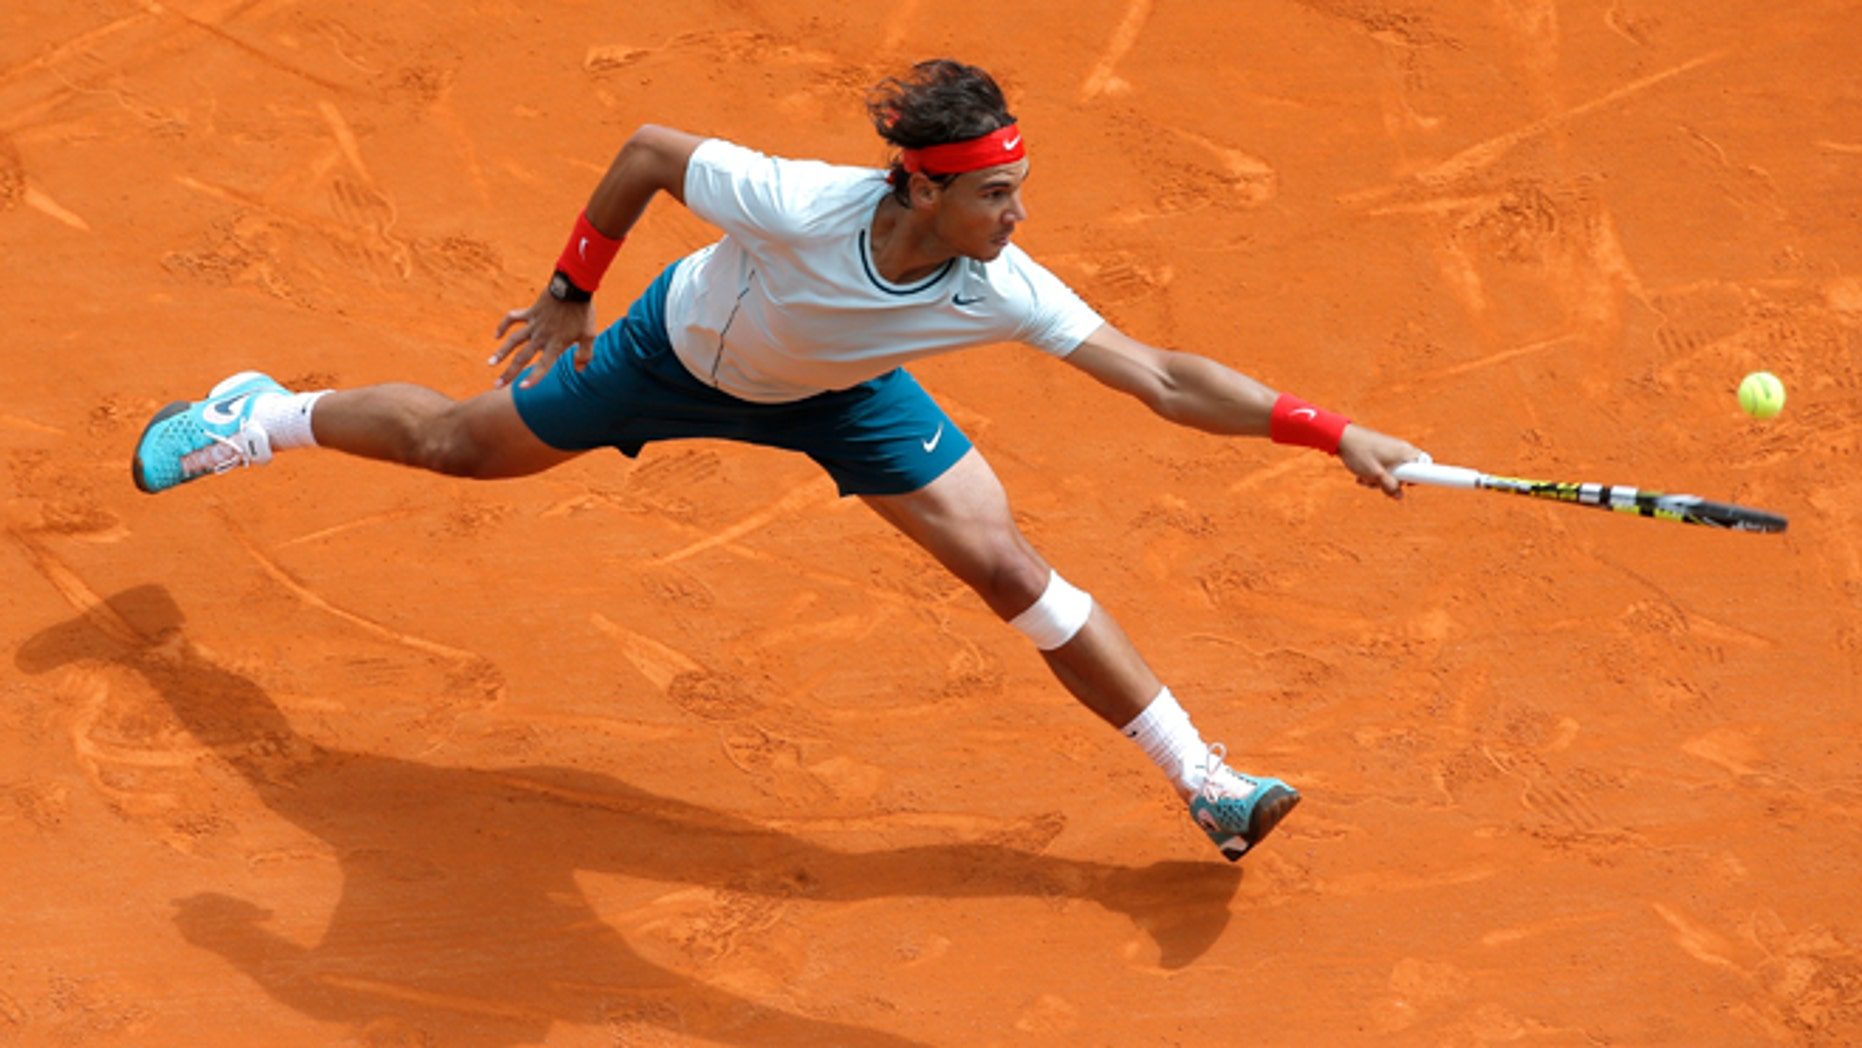 FILE - In this April 20, 2013 file photo, Spain's Rafael Nadal plays a return to France's Jo-Wilfried Tsonga during their semifinal match of the Monte Carlo Tennis Masters tournament in Monaco.  Nadal already owns a record seven titles at Roland Garros. The French Open begins Sunday, May 26, 2013. (AP Photo/Lionel Cironneau, File)